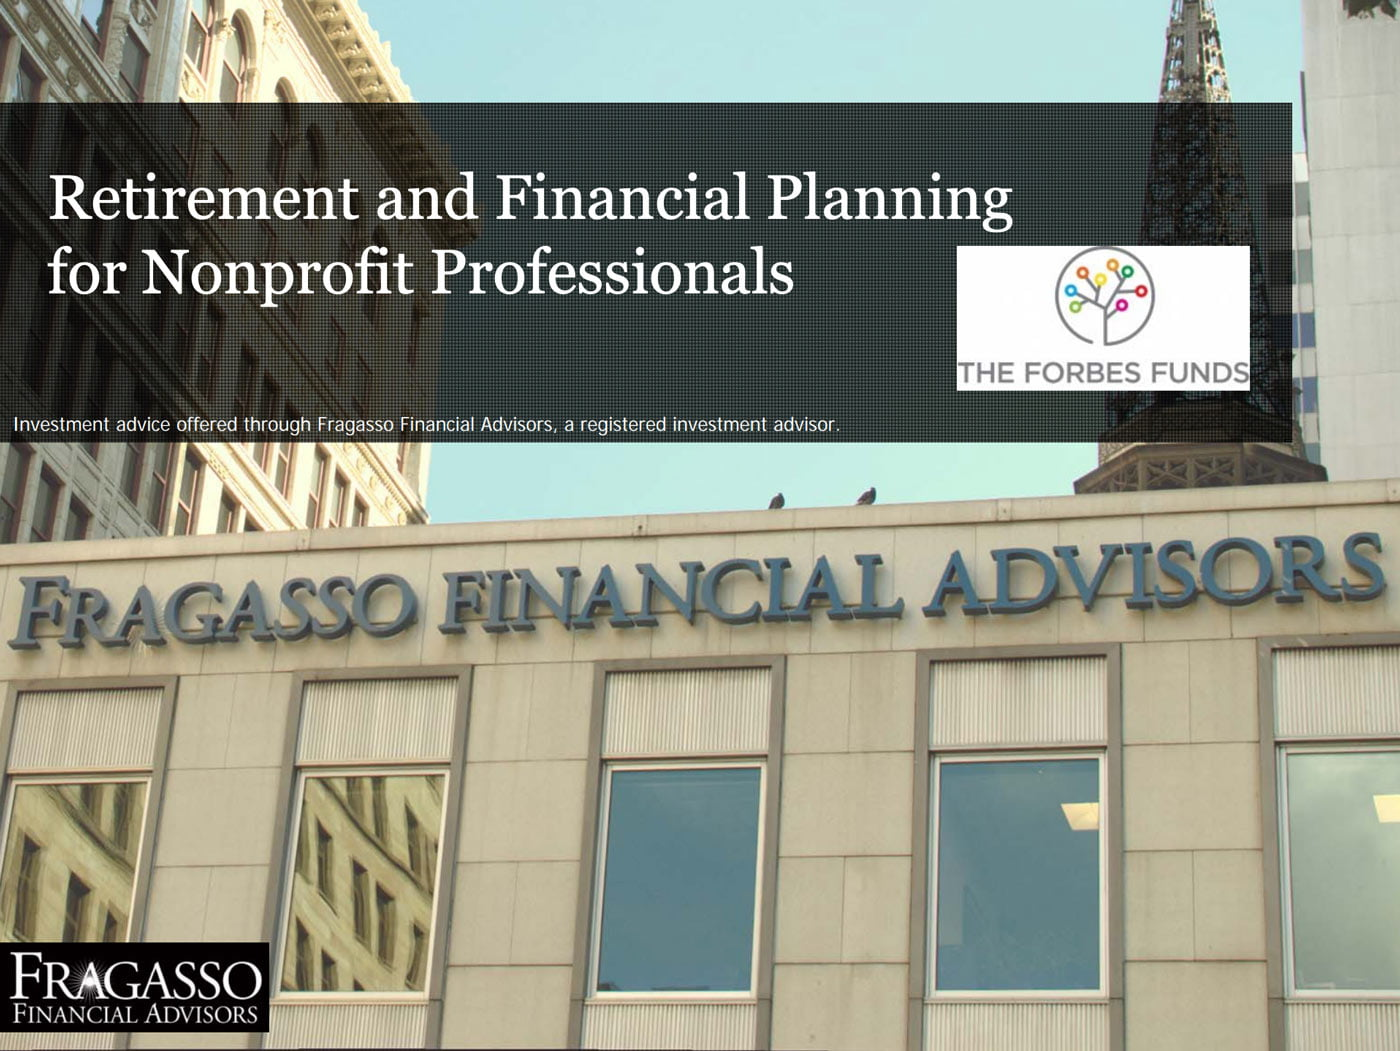 Financial Planning and Retirement for Nonprofit Professionals